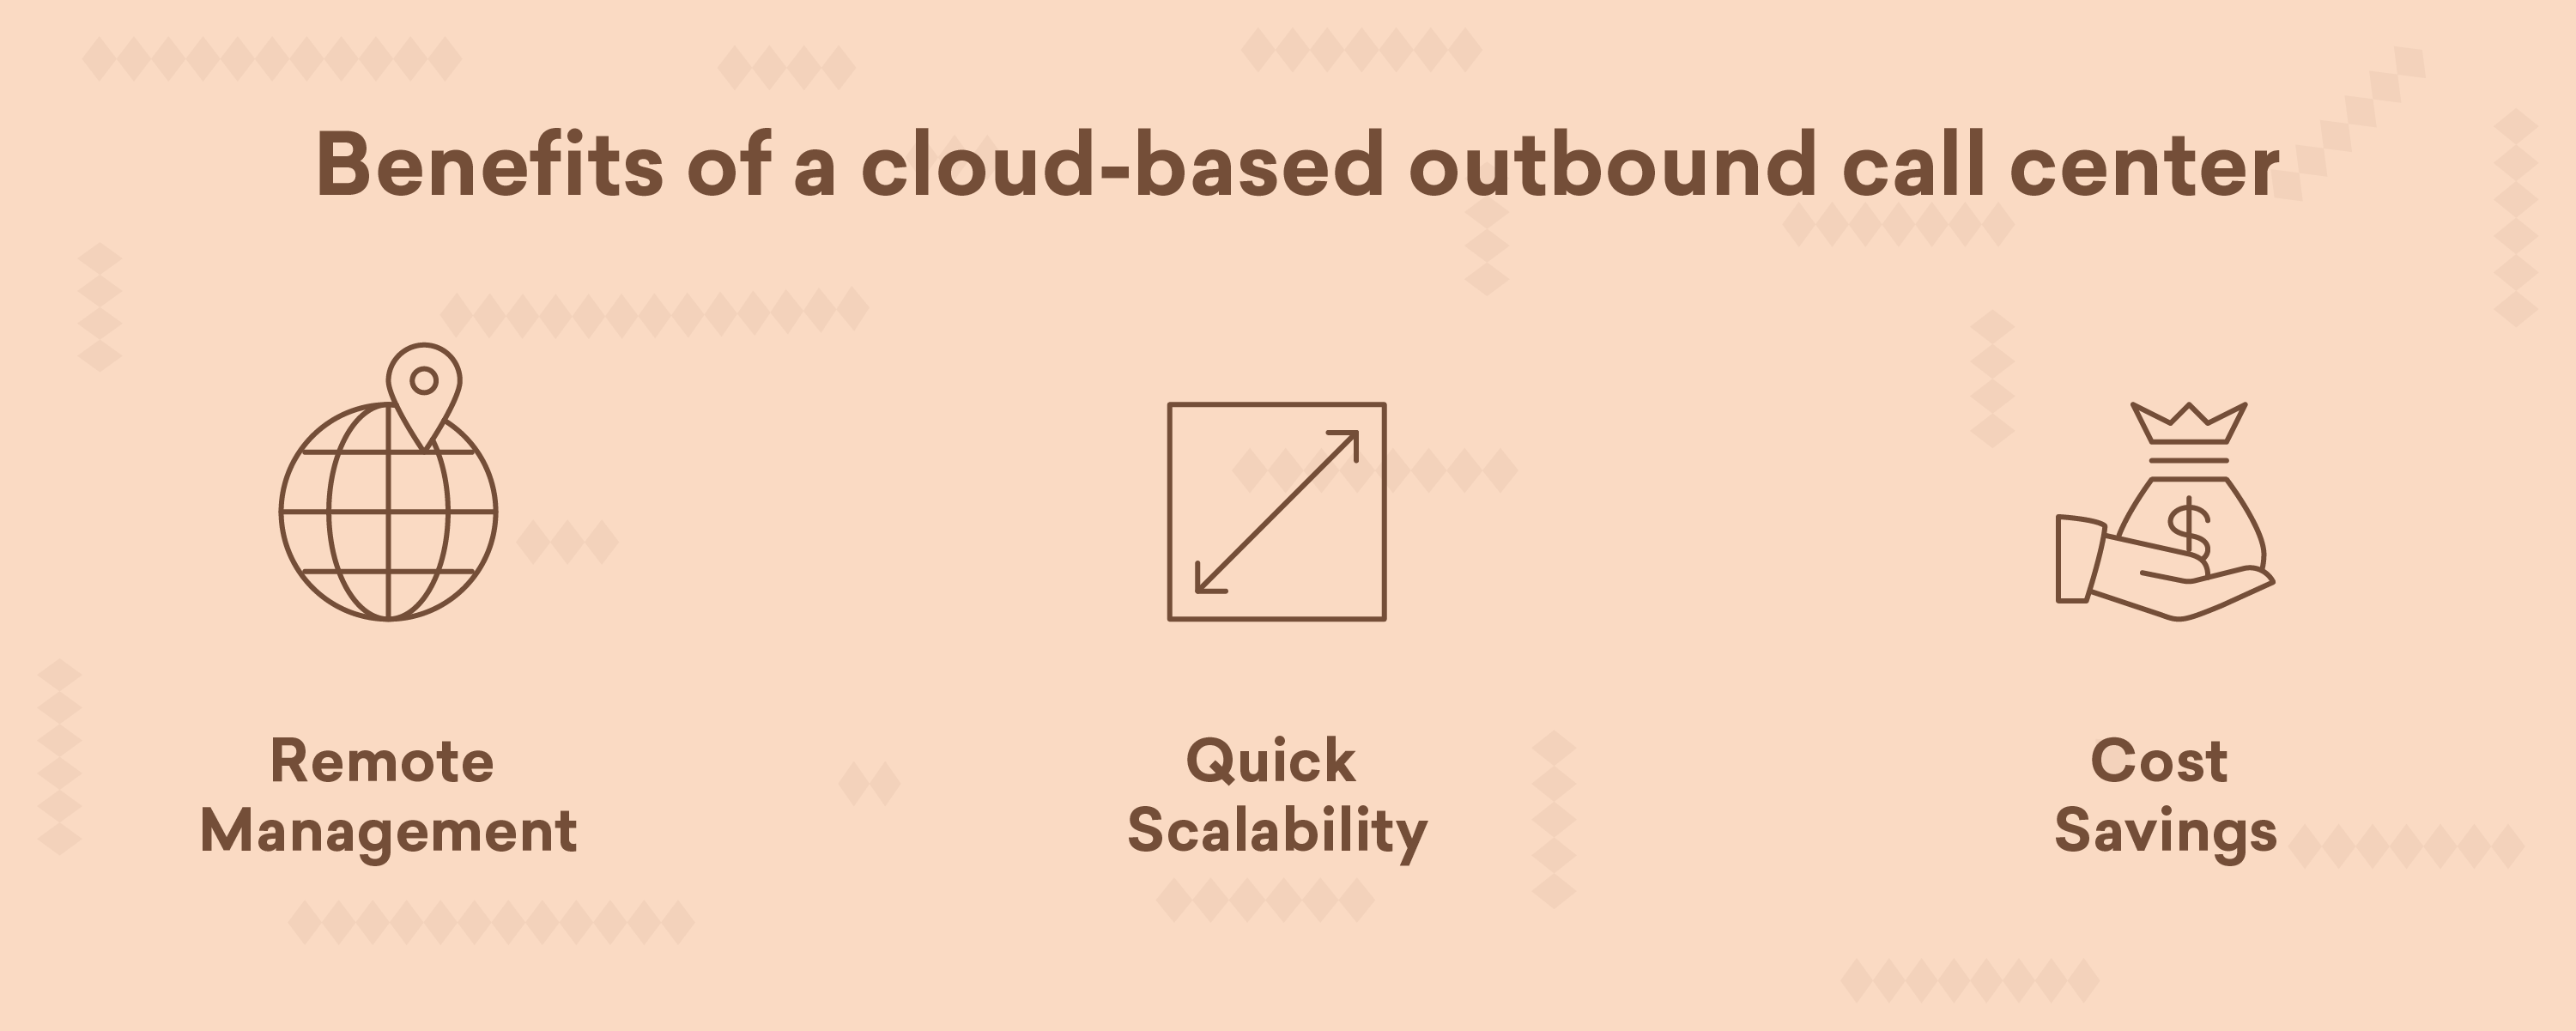 Why a cloud-based outbound call center is ideal for outbound calling